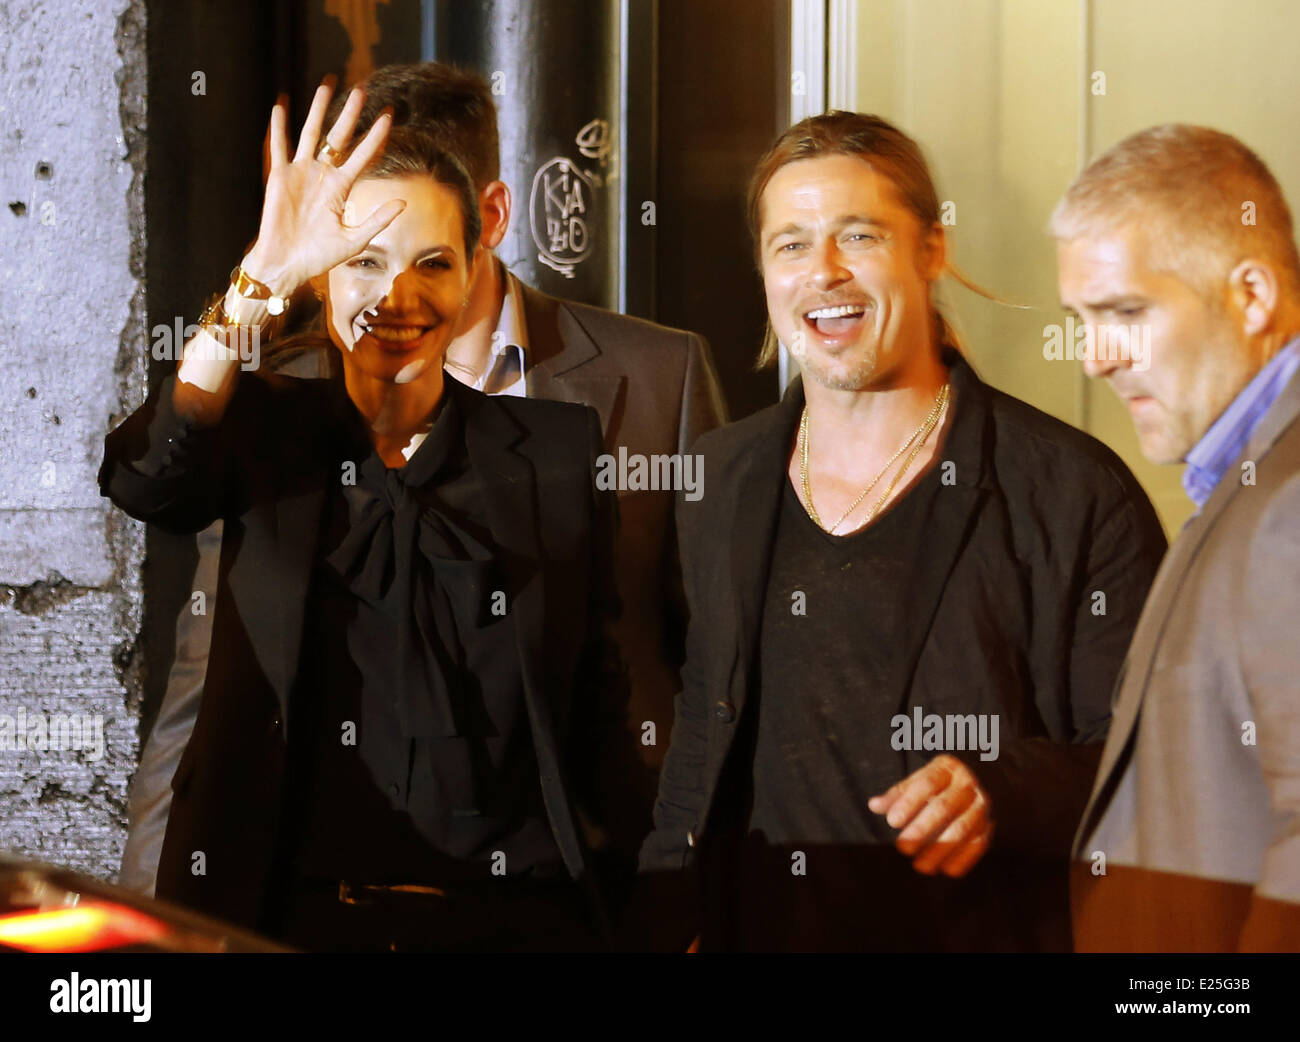 Angelina Jolie and Brad Pitt leaving their hotel  Featuring: Angelina Jolie,Brad Pitt Where: Paris, France When: - Stock Image